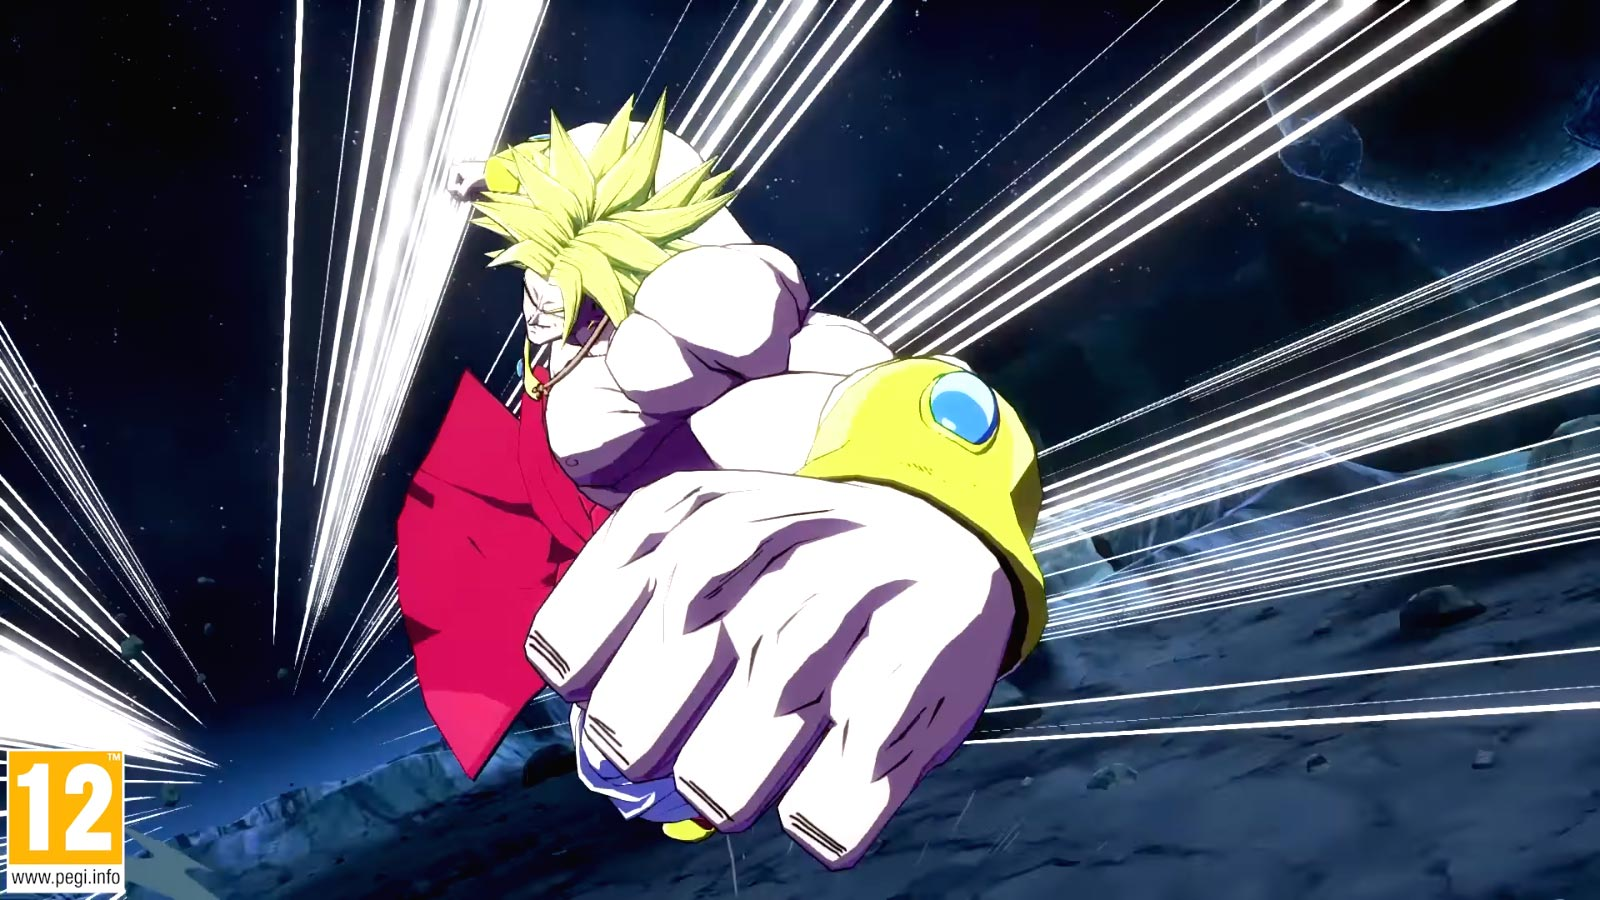 Broly in Dragon Ball FighterZ 4 out of 15 image gallery